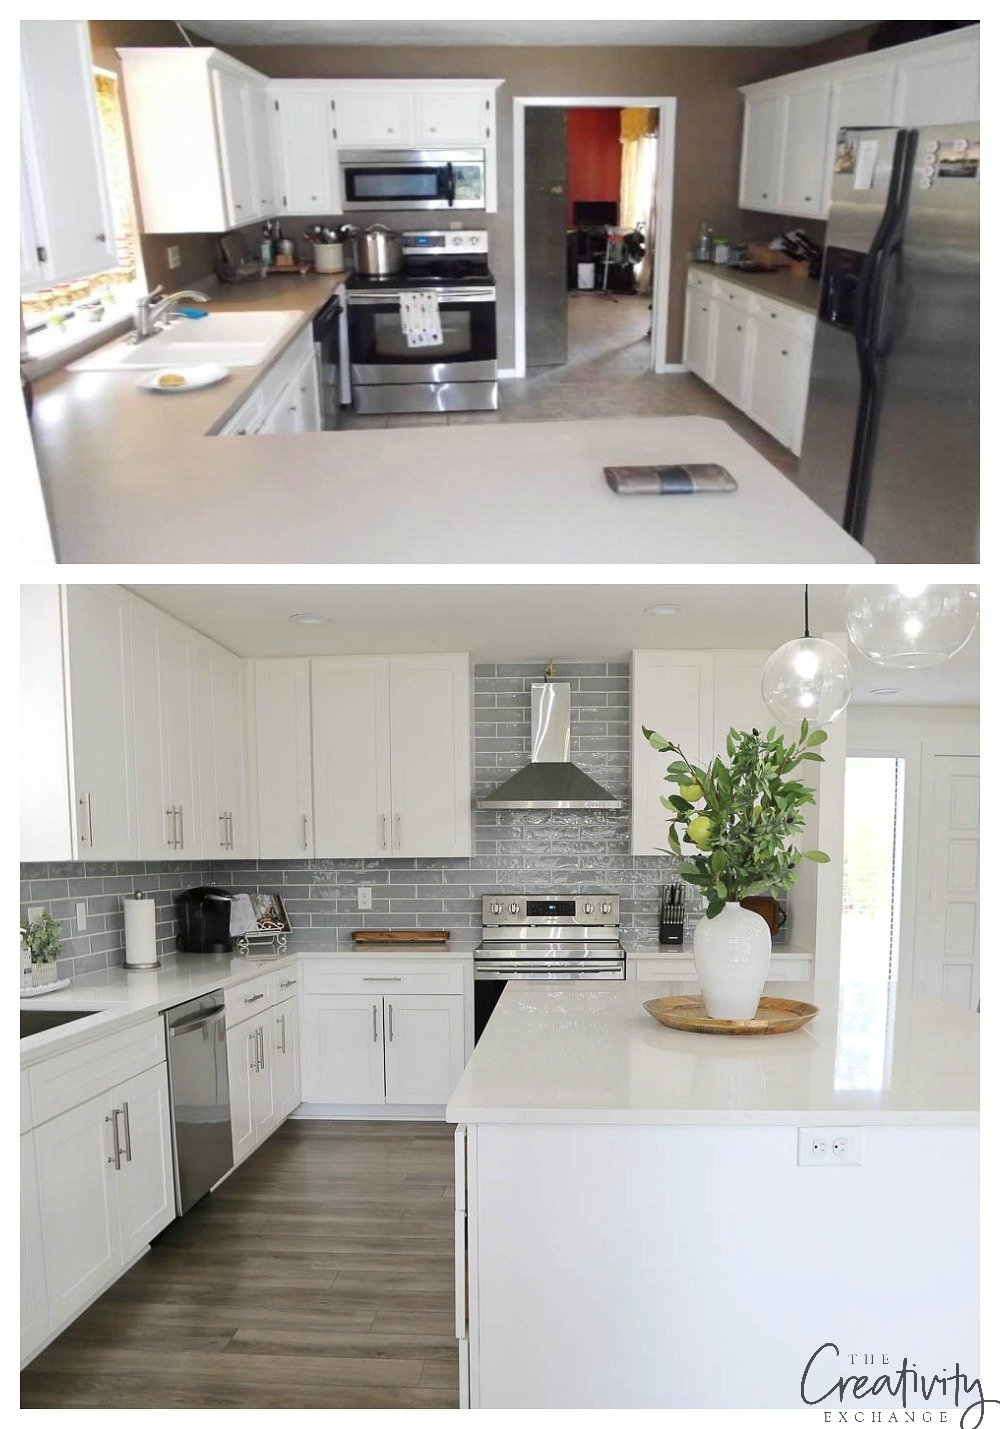 Amazing kitchen remodel project before and after